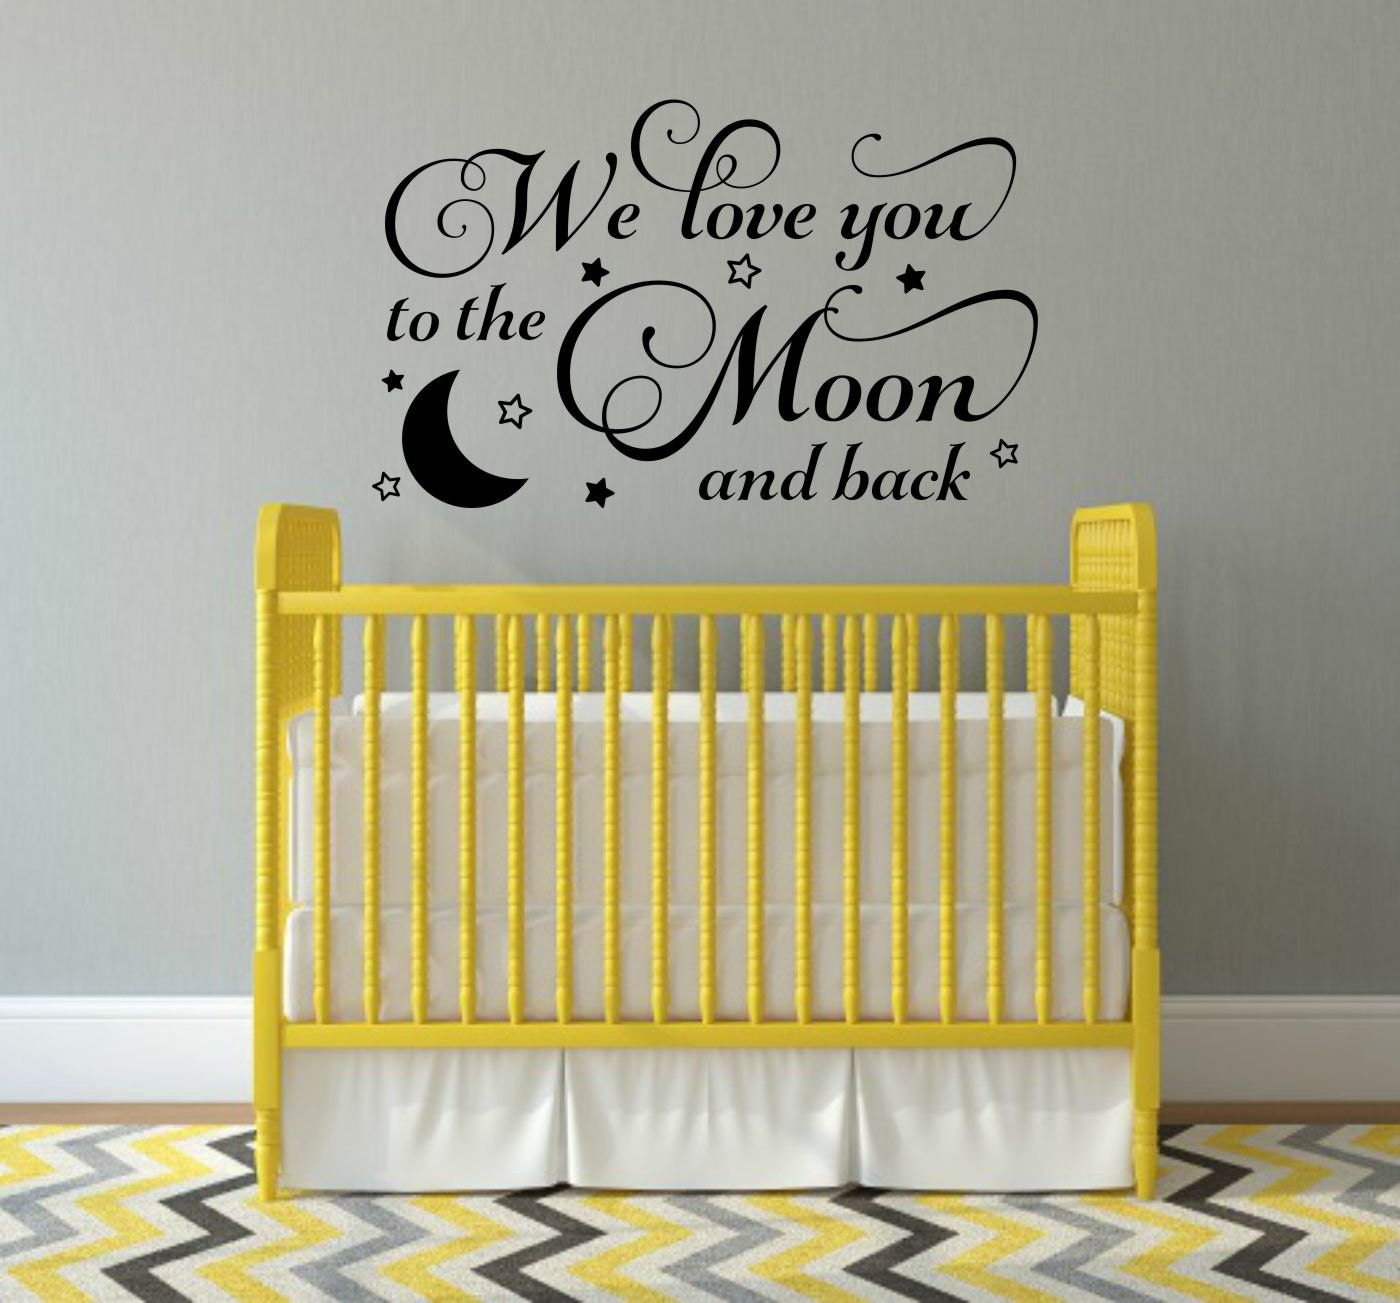 We Love You To The Moon And Back Decal Nursery Wall Decal Moon